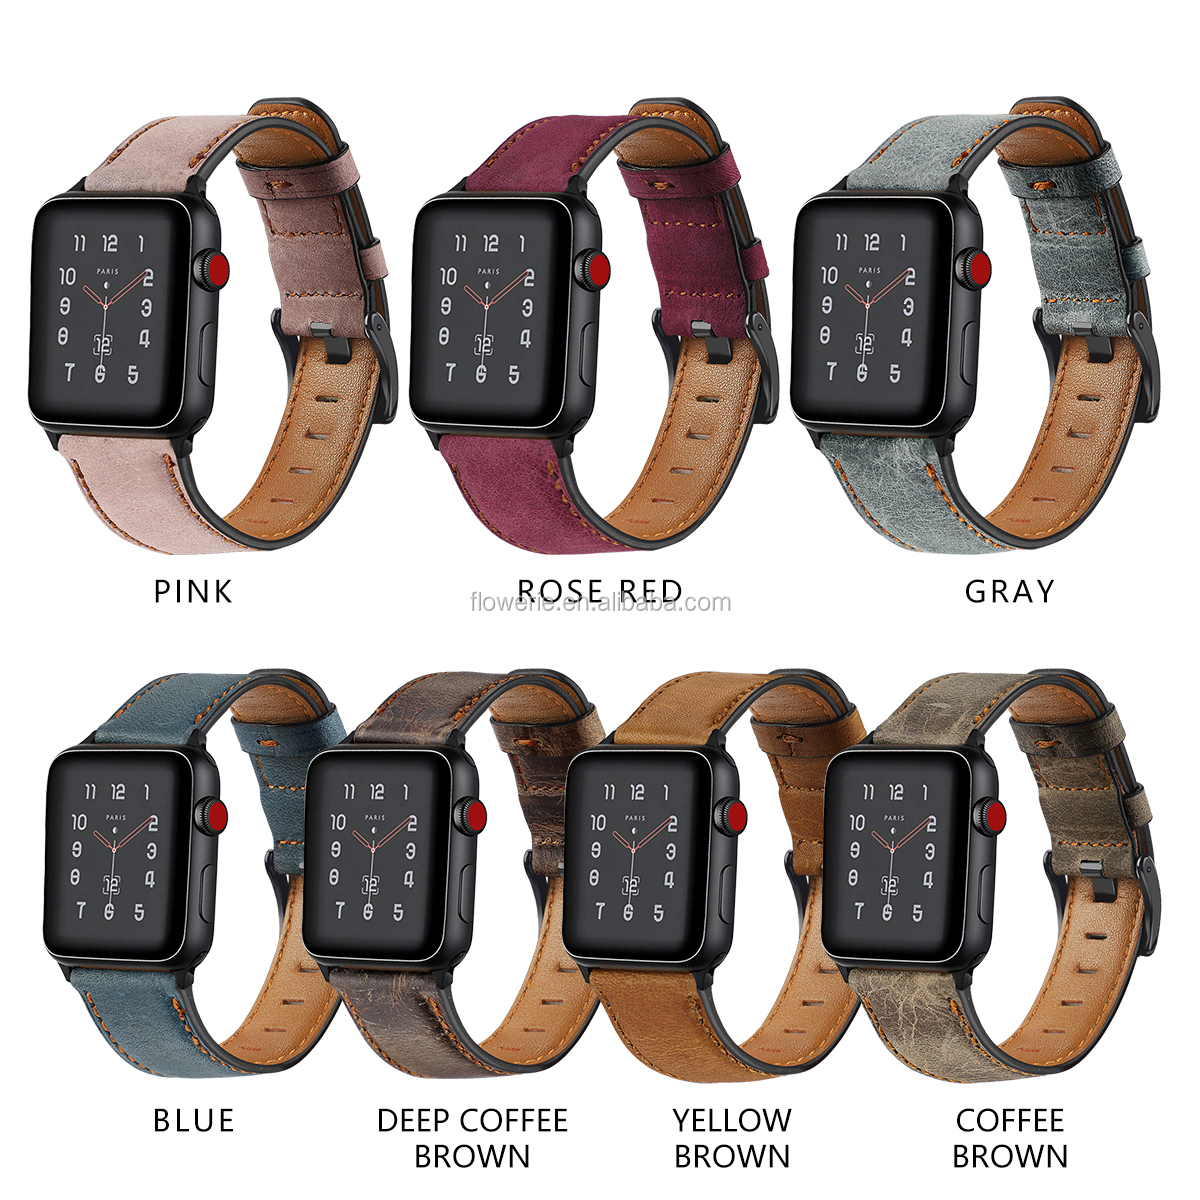 BLAP181147 Wholesale finely processed 100% genuine leather watch strap for apple watch